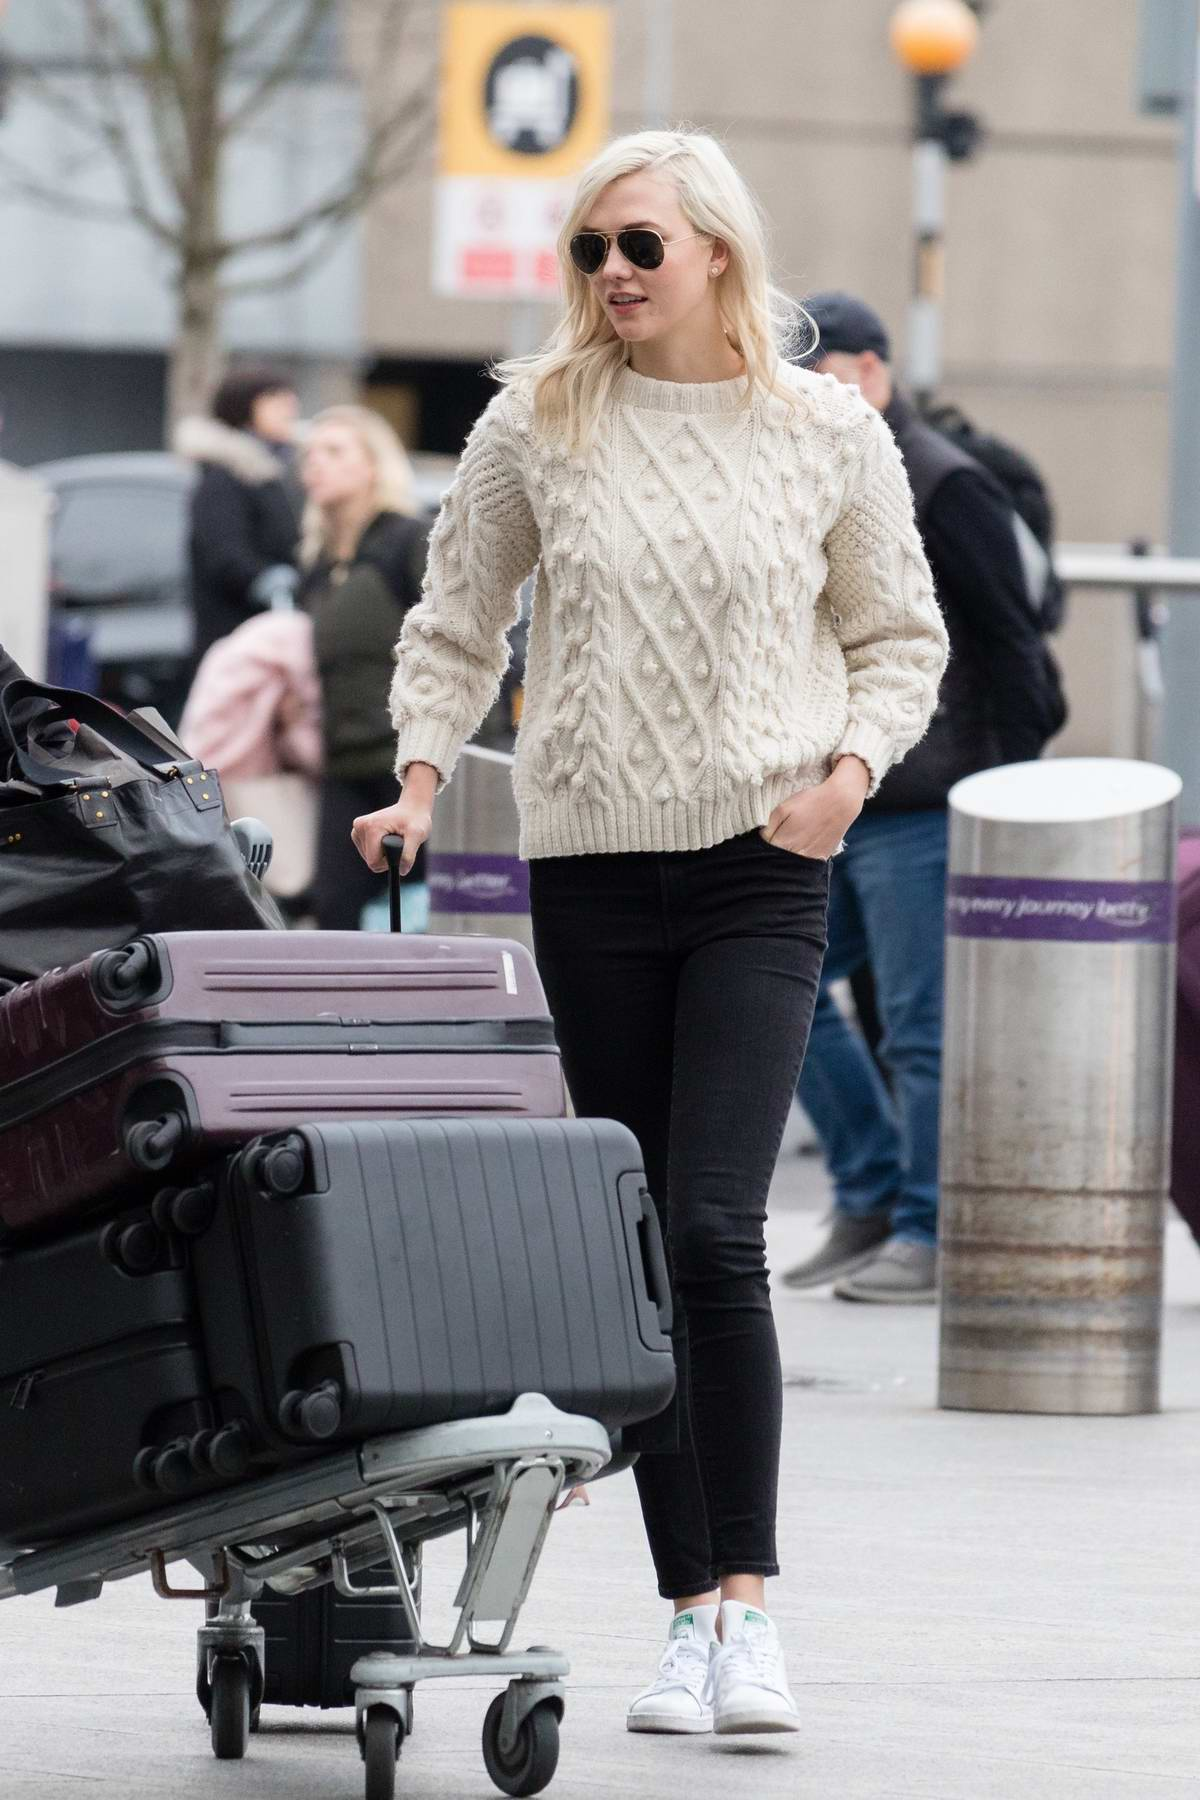 Karlie Kloss spotted at Heathrow airport as she flies out of London